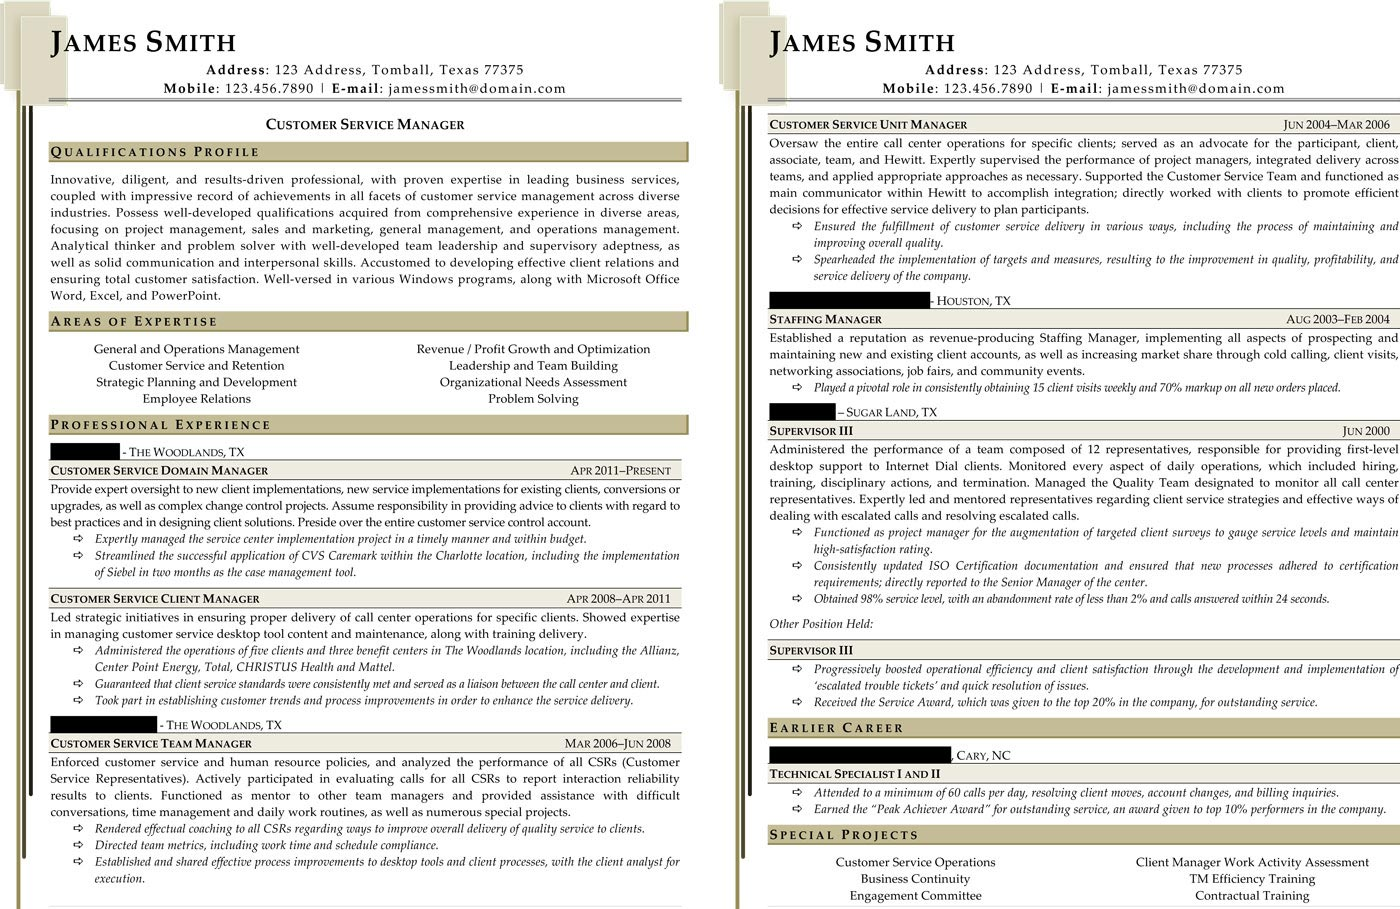 Customer Service Manager Resume · Human Resource Generalist Resume  Human Resource Generalist Resume